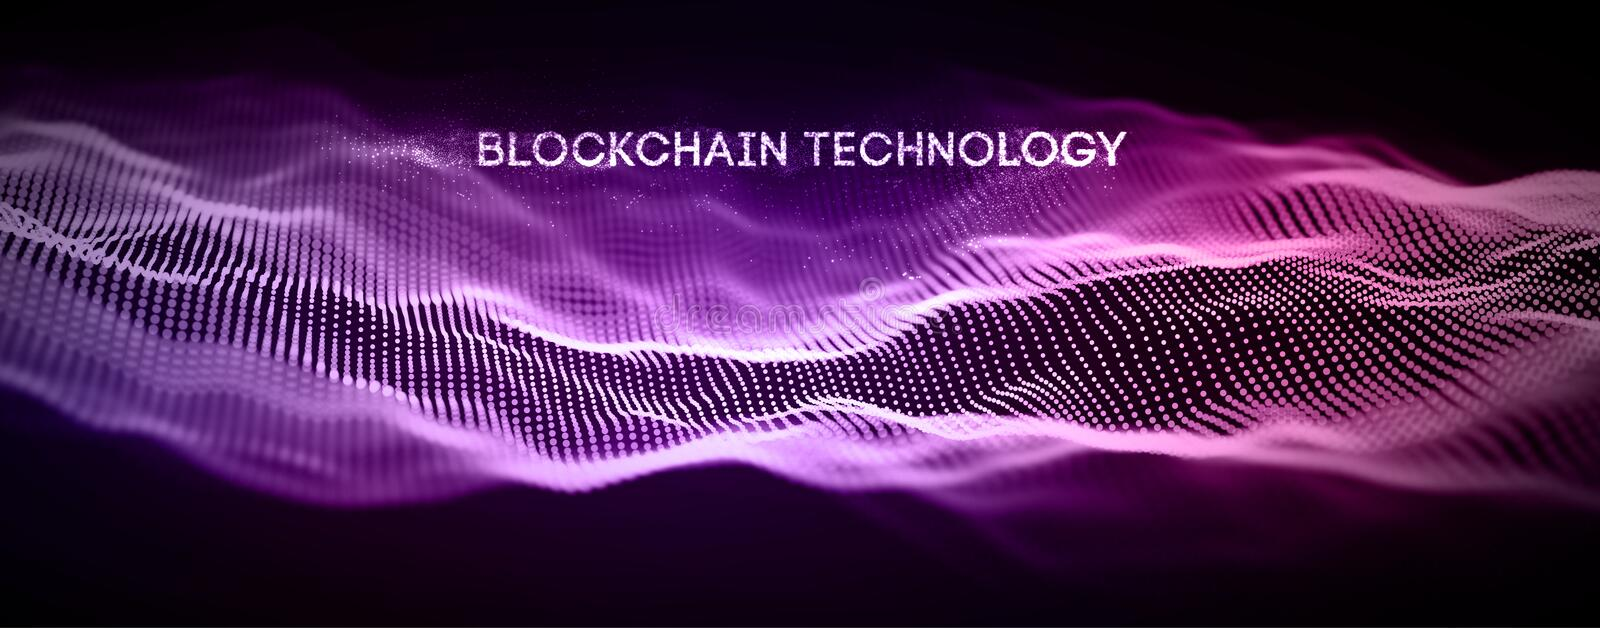 Blockchain technology background. Cryptocurrency fintech block chain network and programming concept. Abstract Segwit. stock illustration